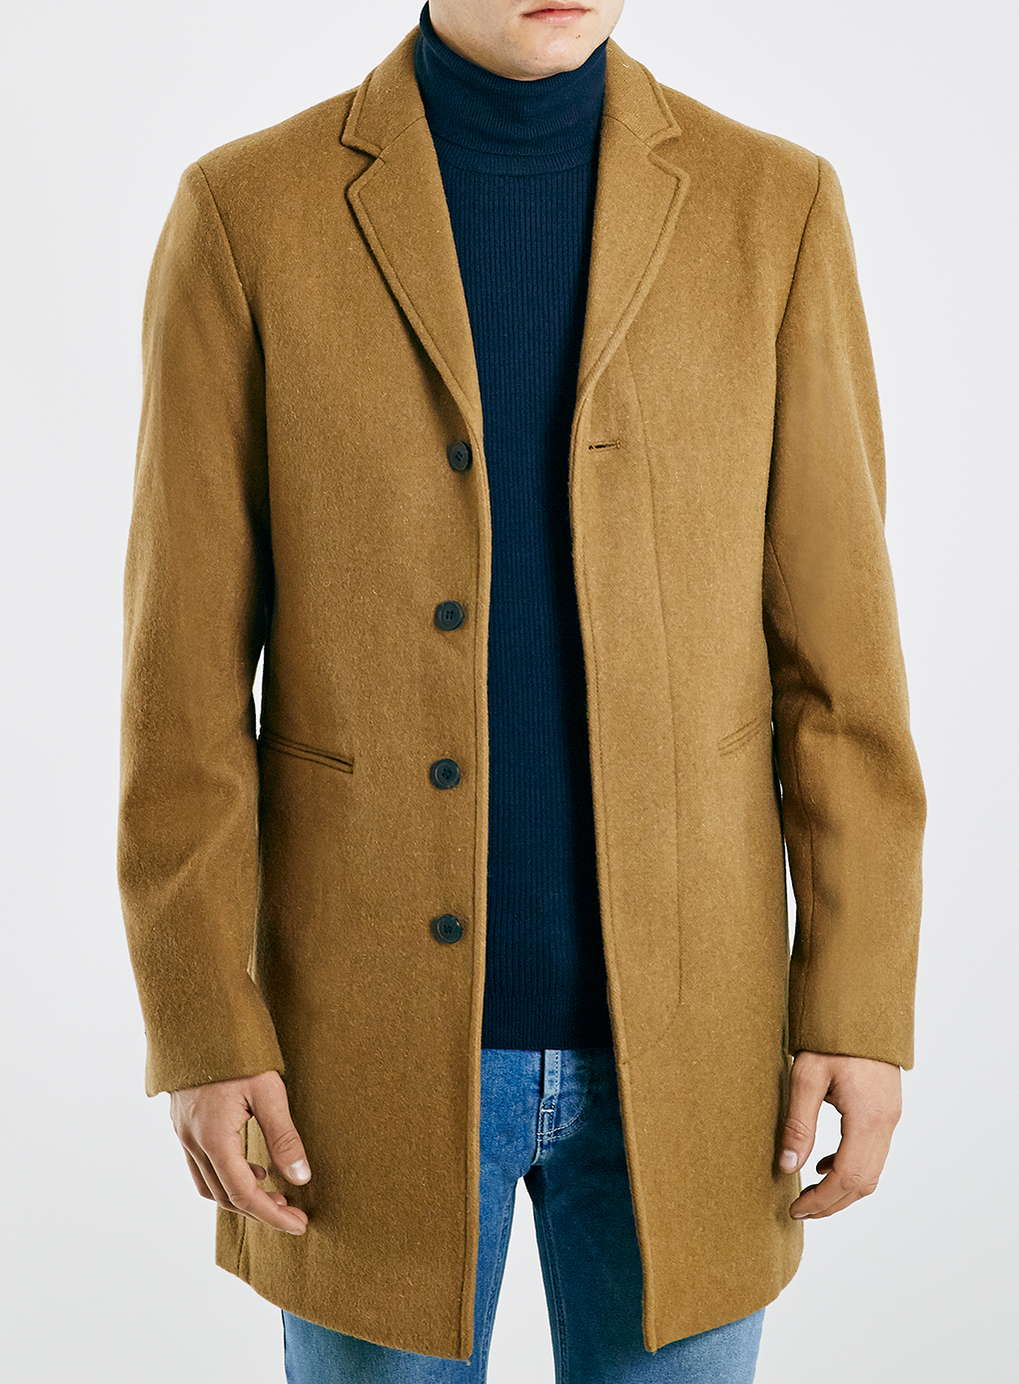 Topman Wool Camel Coat